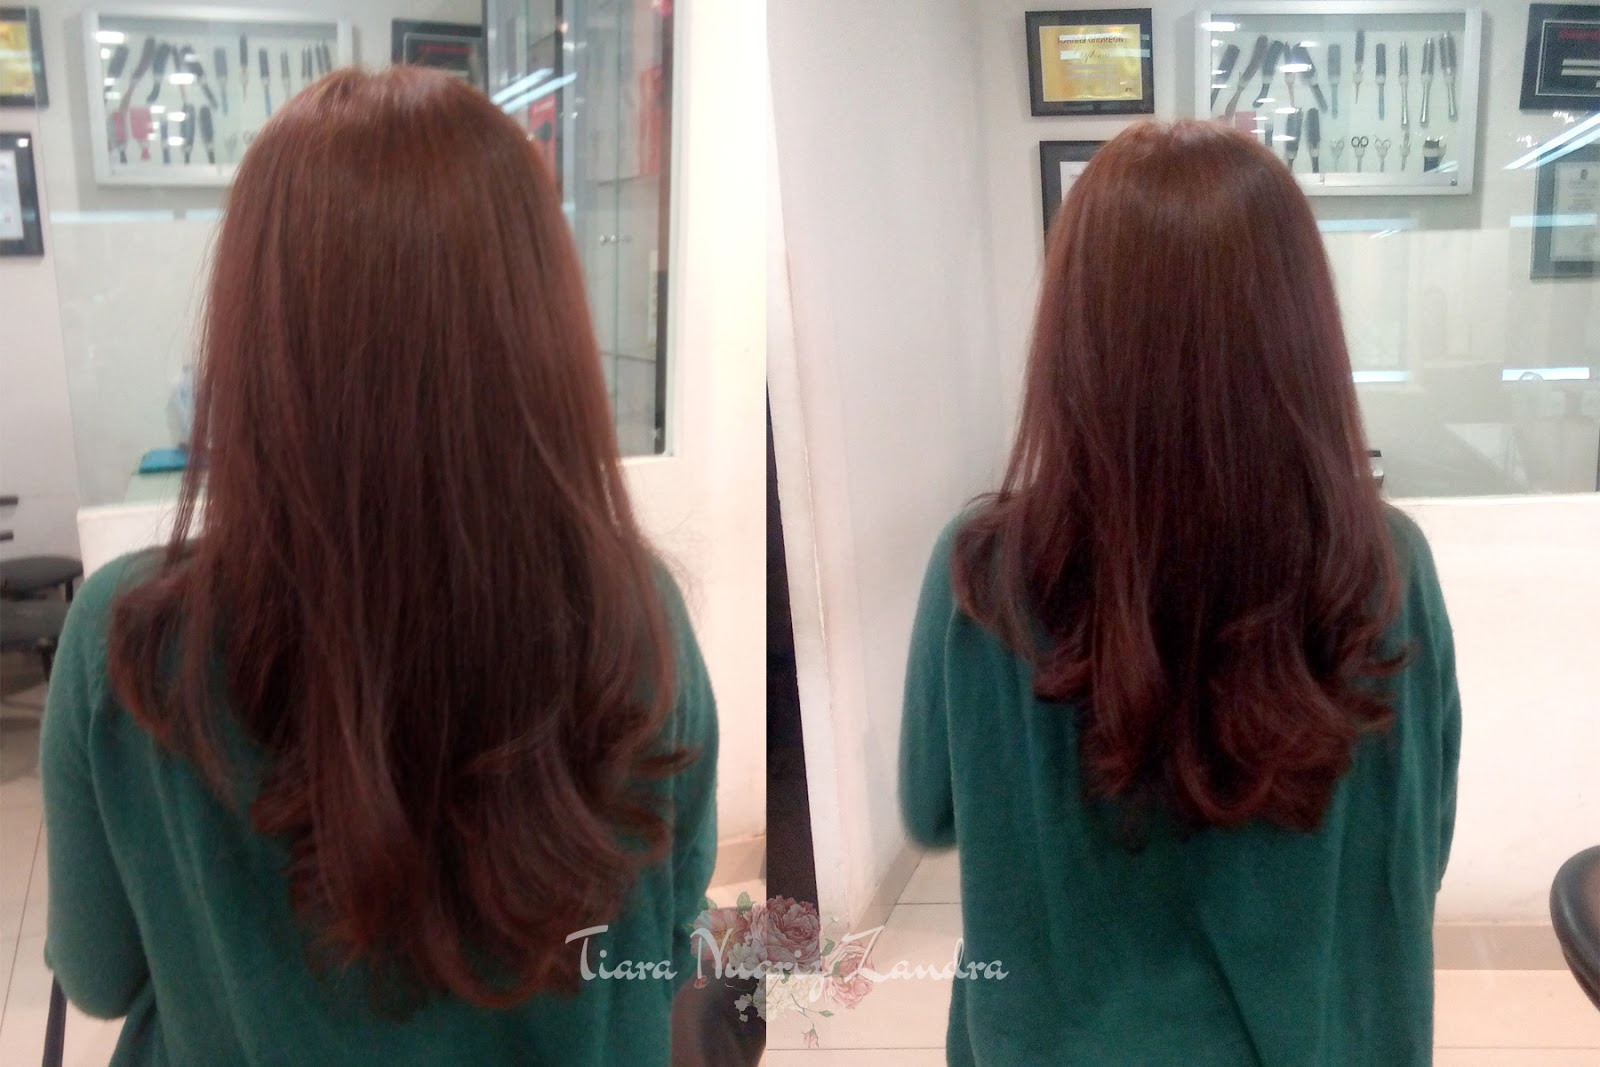 HAIR COLORING AT JOHNNY ANDREAN SCHOOL   TRAINING - BEHIND THE SCENE ... 4a69761762